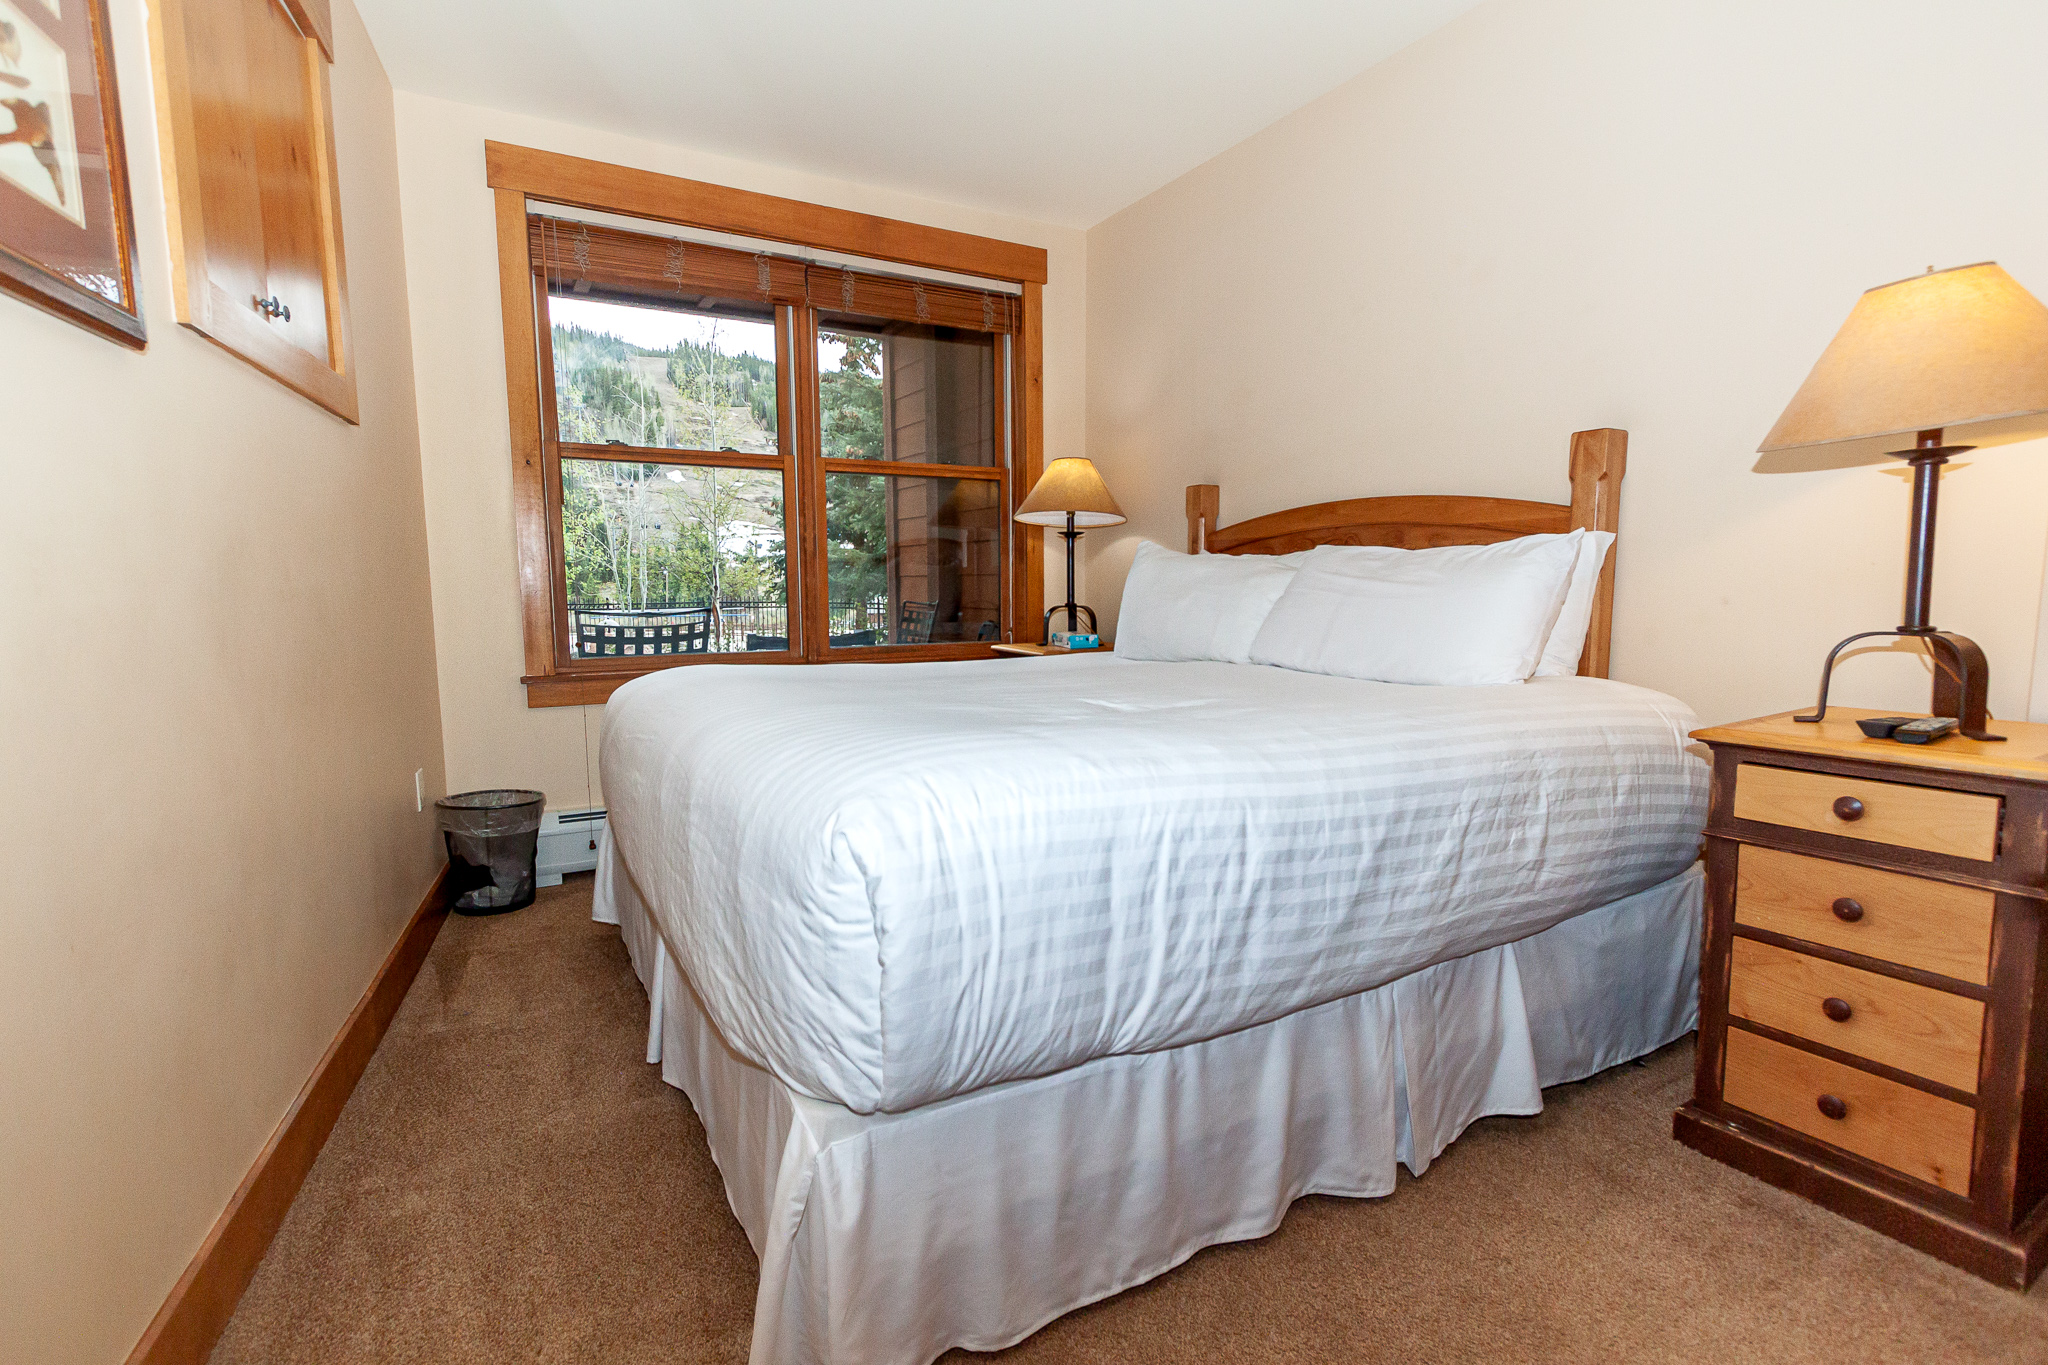 The guest bedroom features a king-sized bed and a flat screen TV.